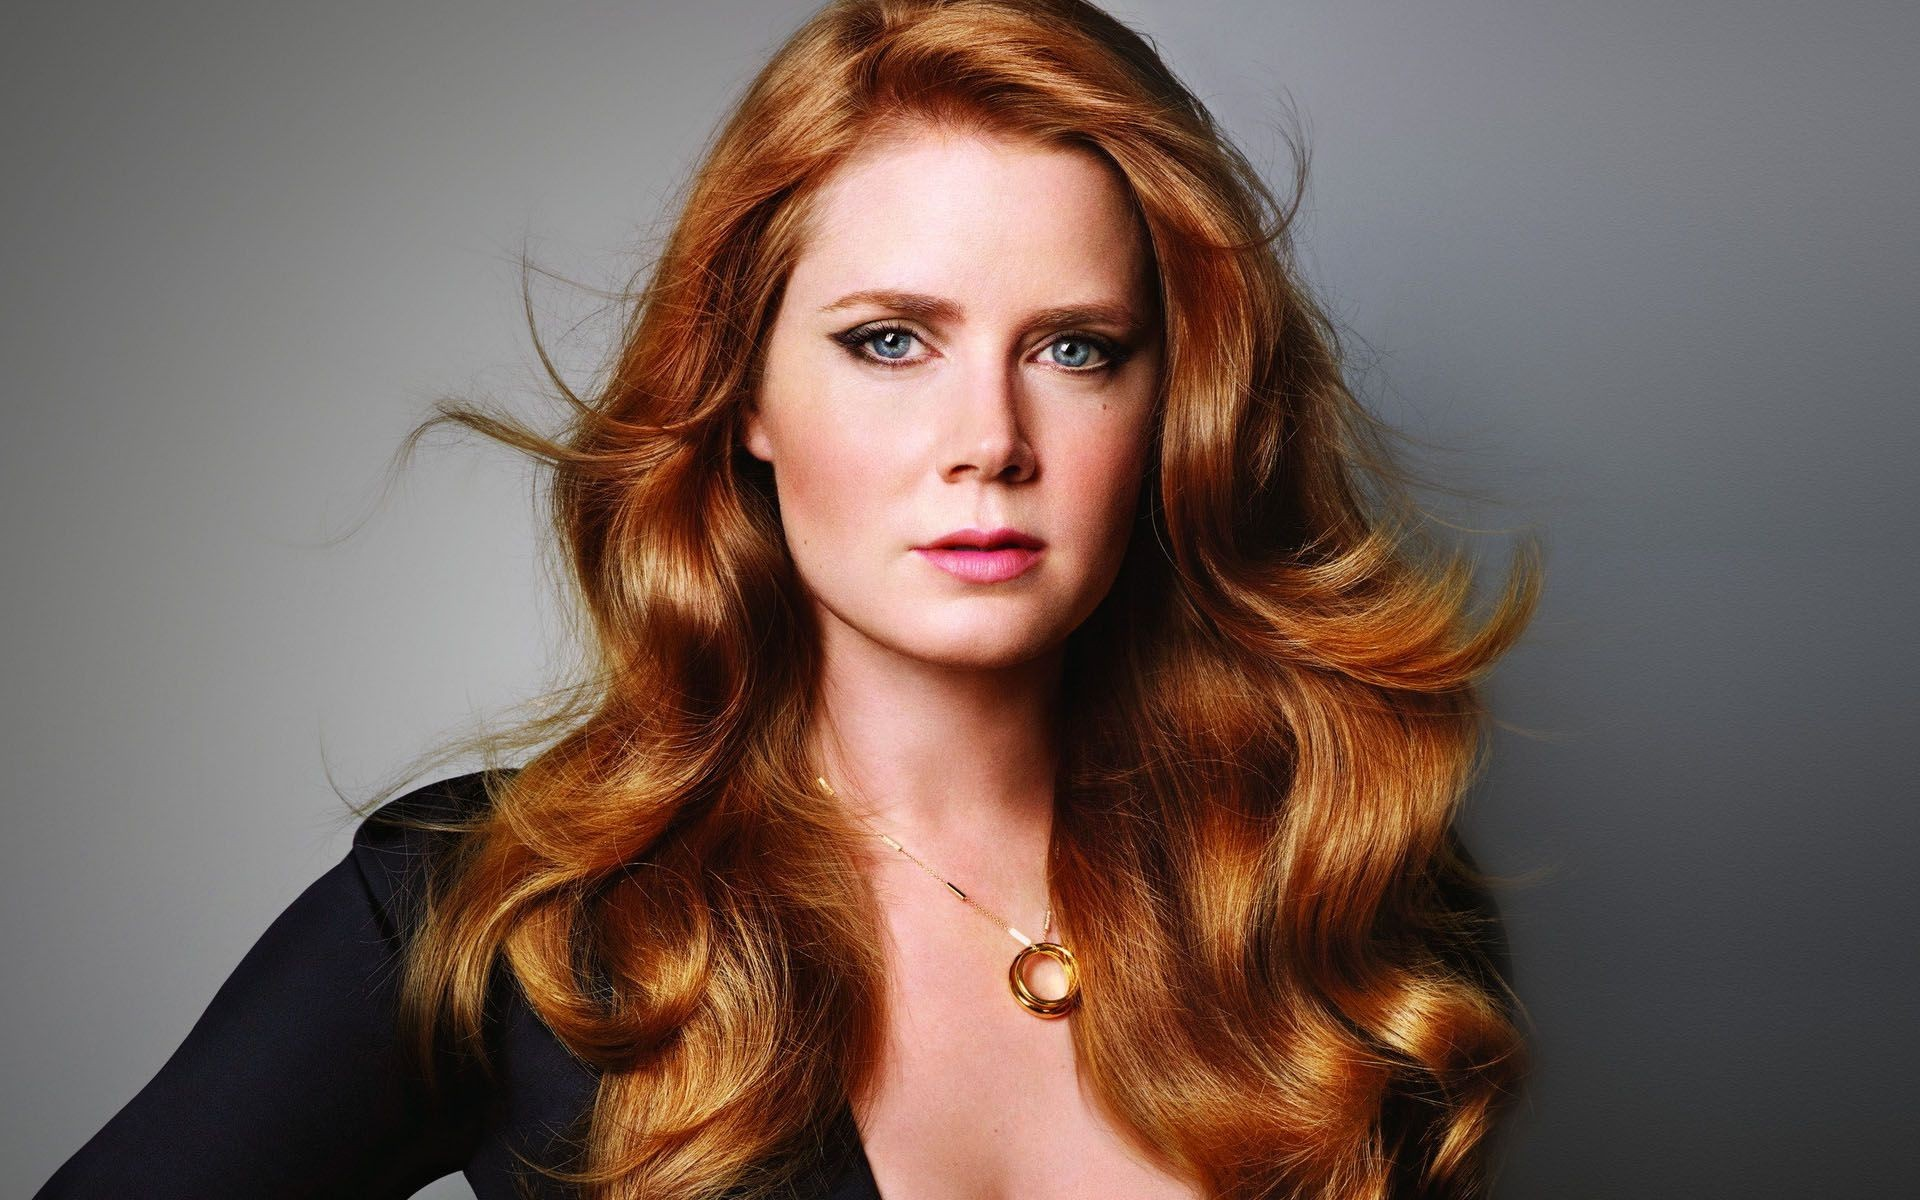 Desktop Amy Adams Cute Face Look Hd Background Free Pictures Mobile